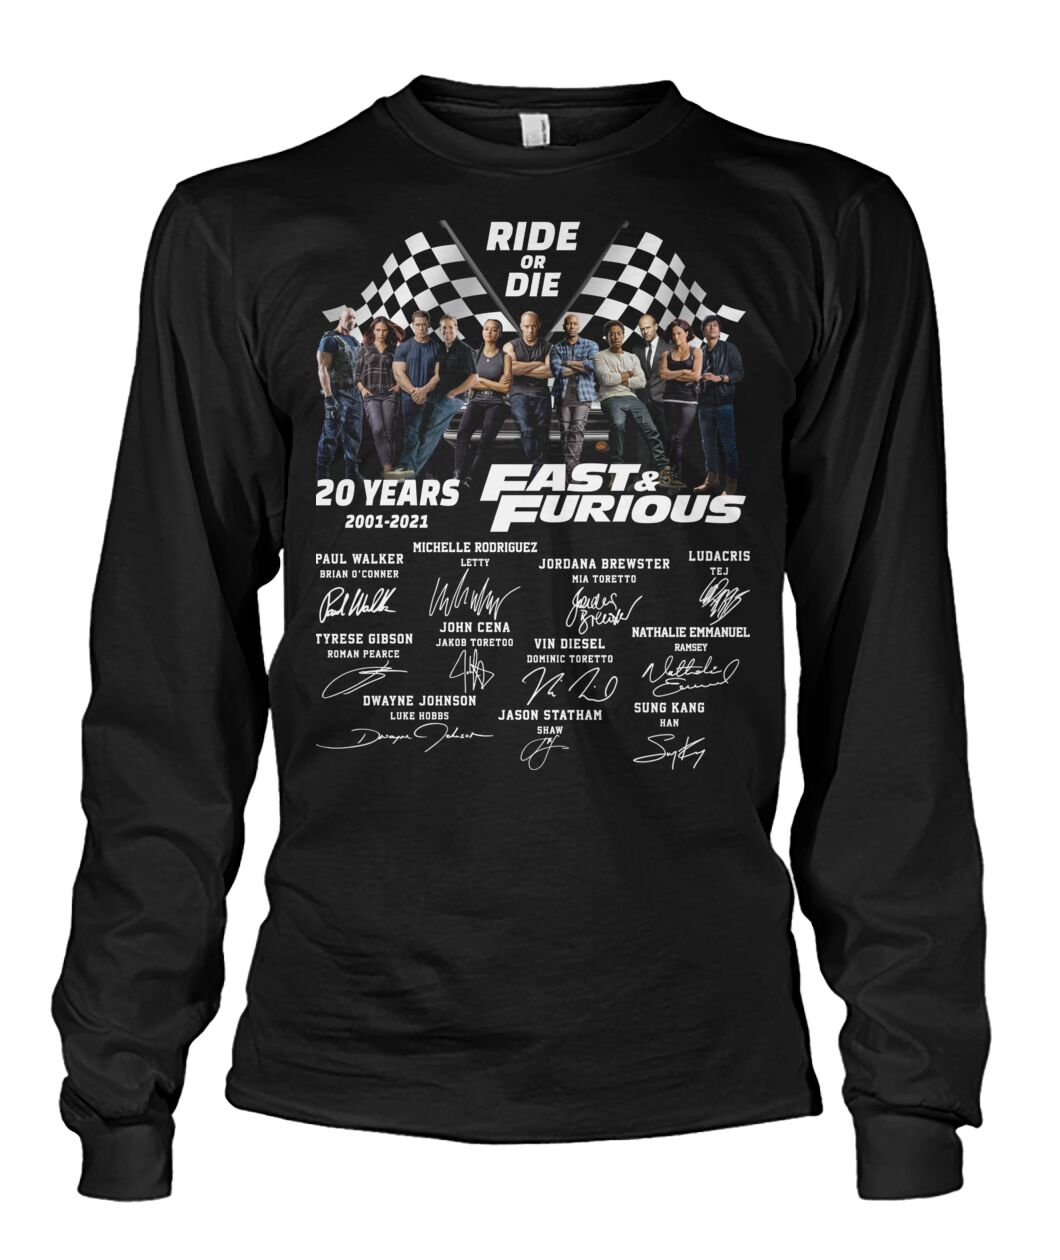 Ride or die Fast & furious signature